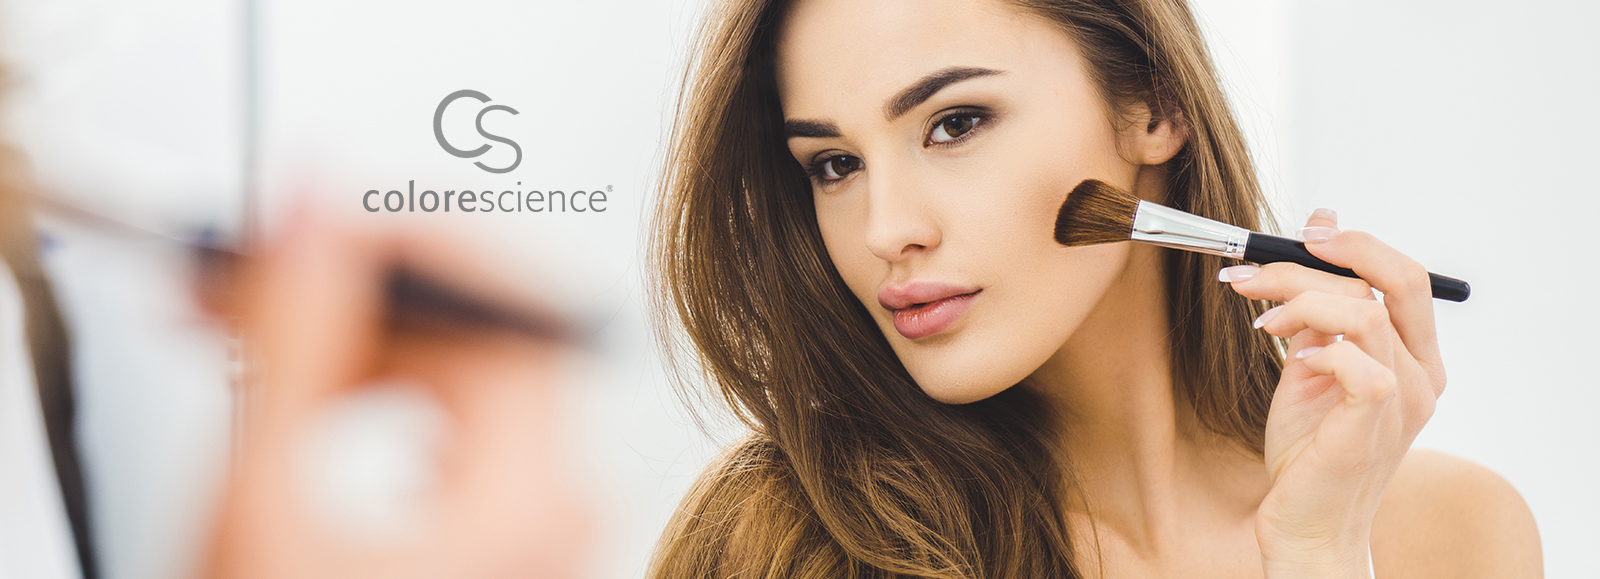 ColoreScience Make-Up